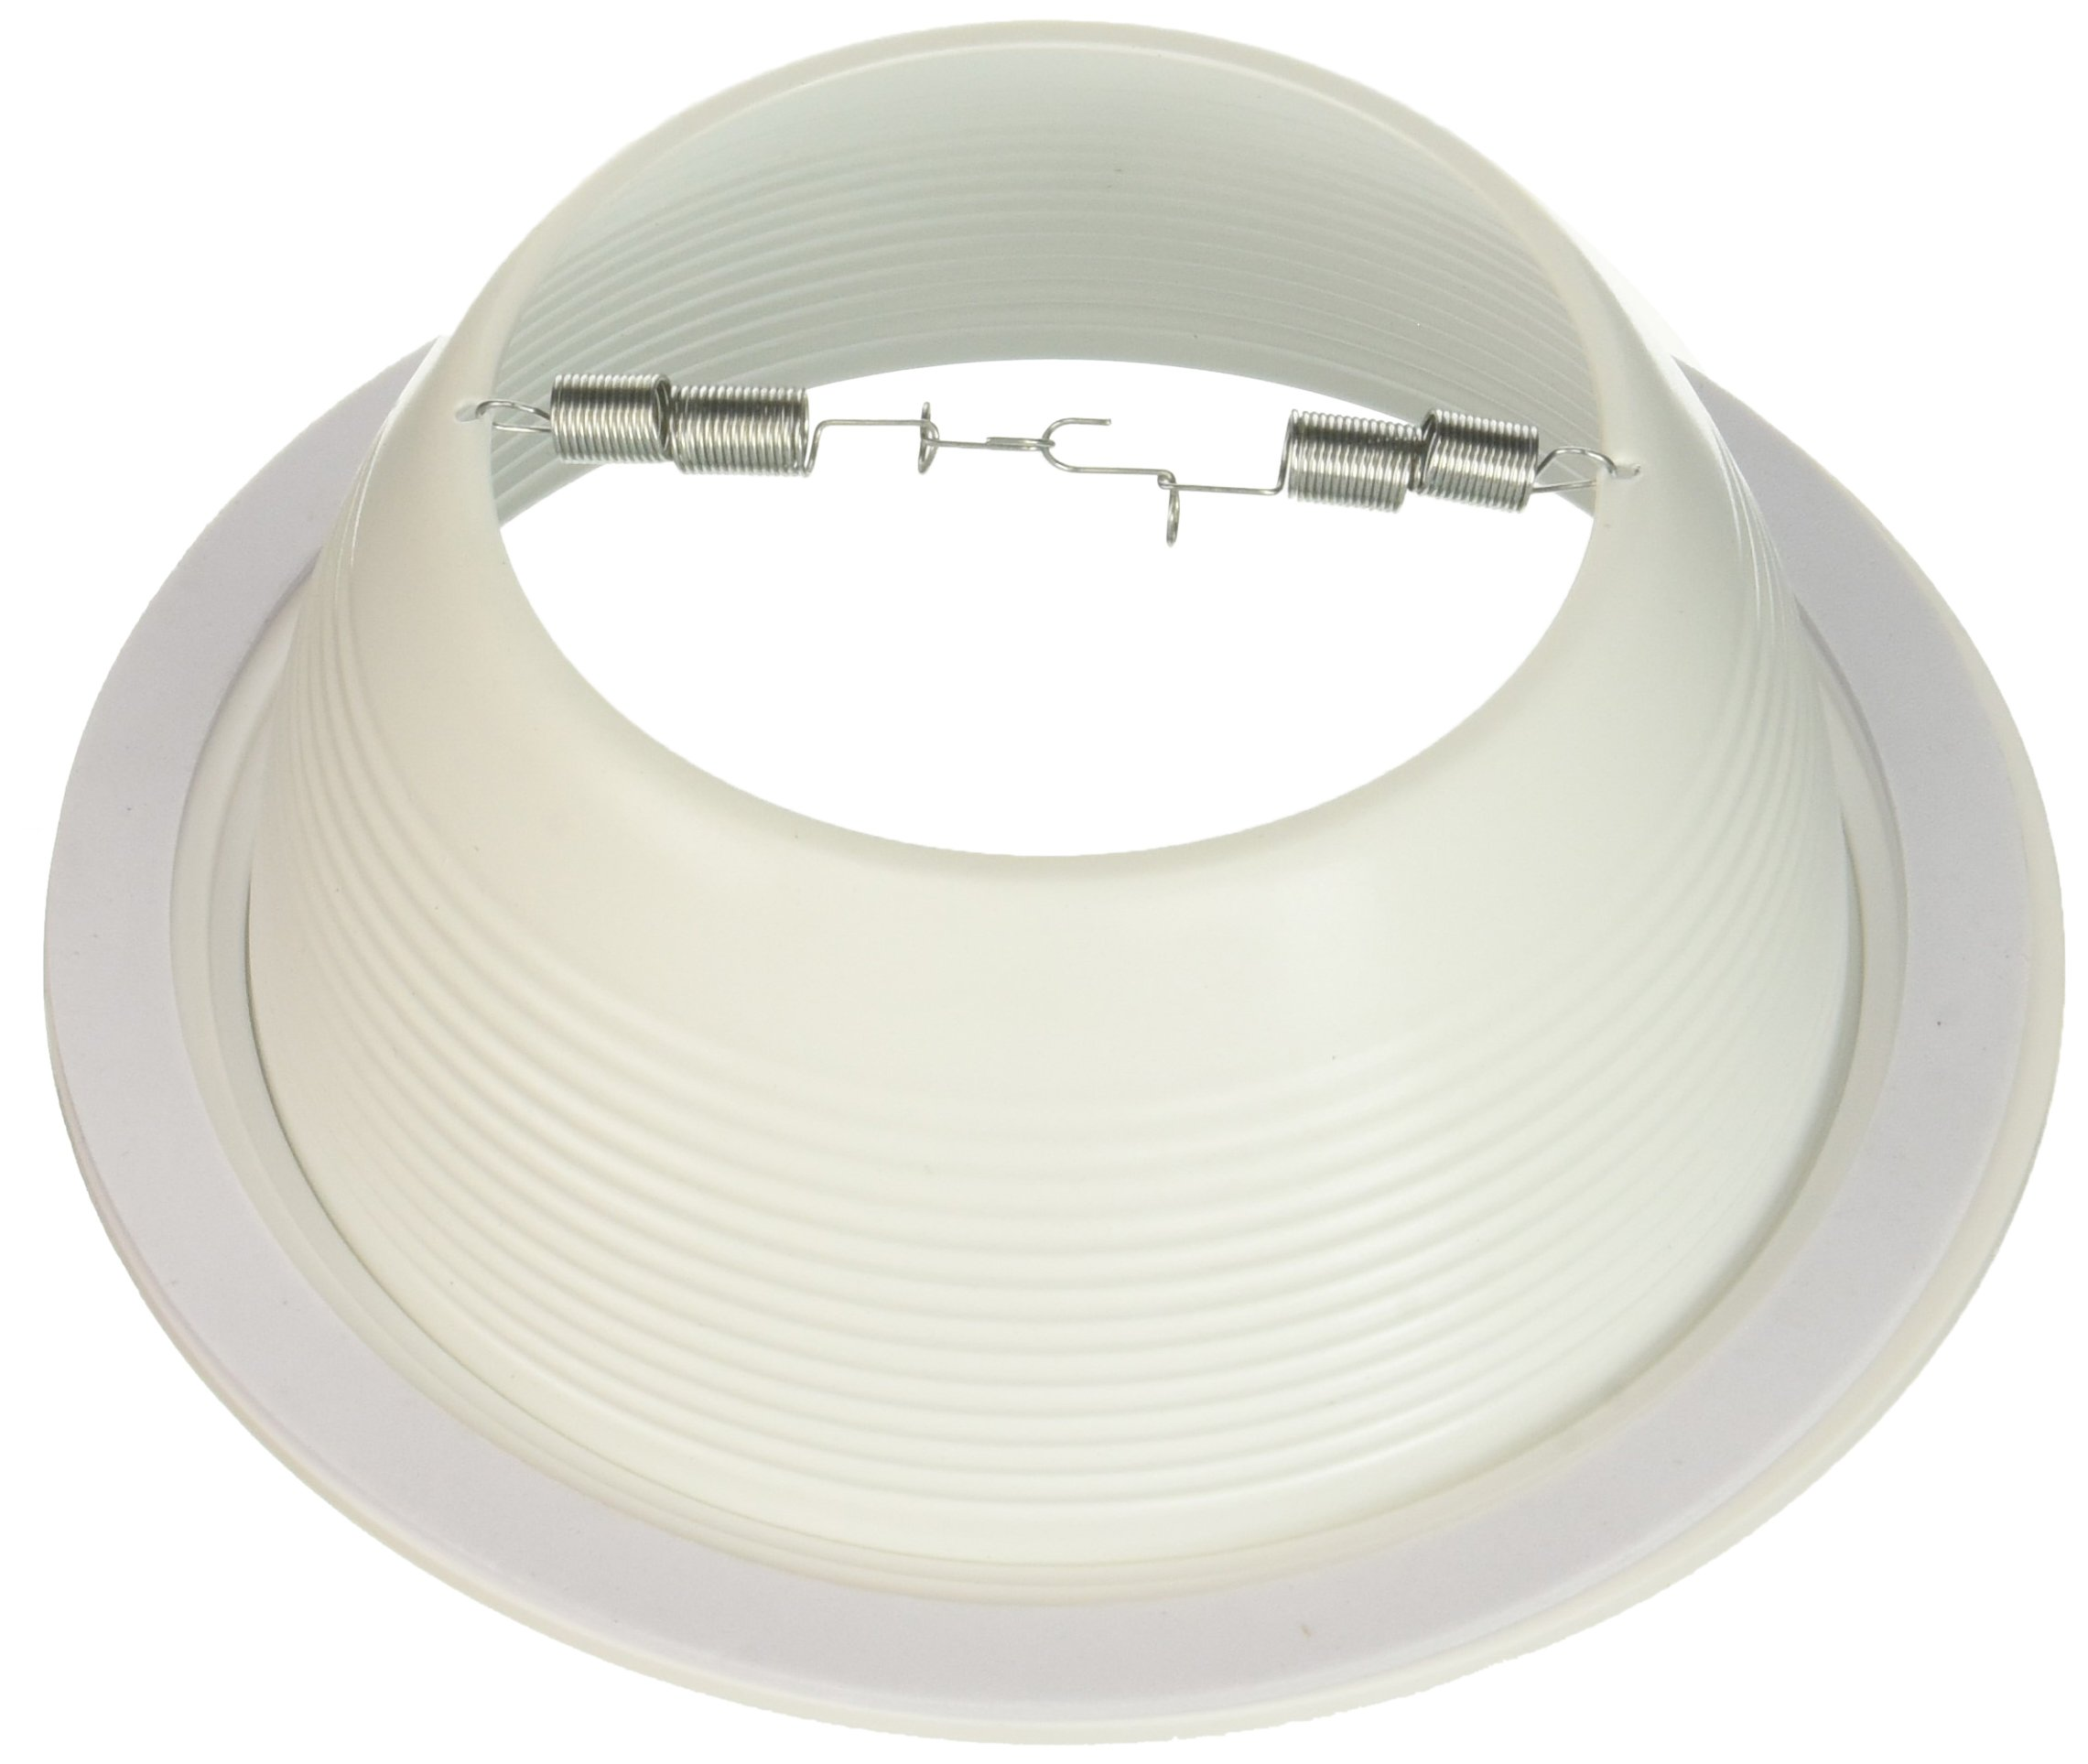 Four-Bros Lighting SB30/WHT Baffle Trim 6'' White Ring for 6'' Recessed Can Lighting-Replaces BR30/PAR30/R30